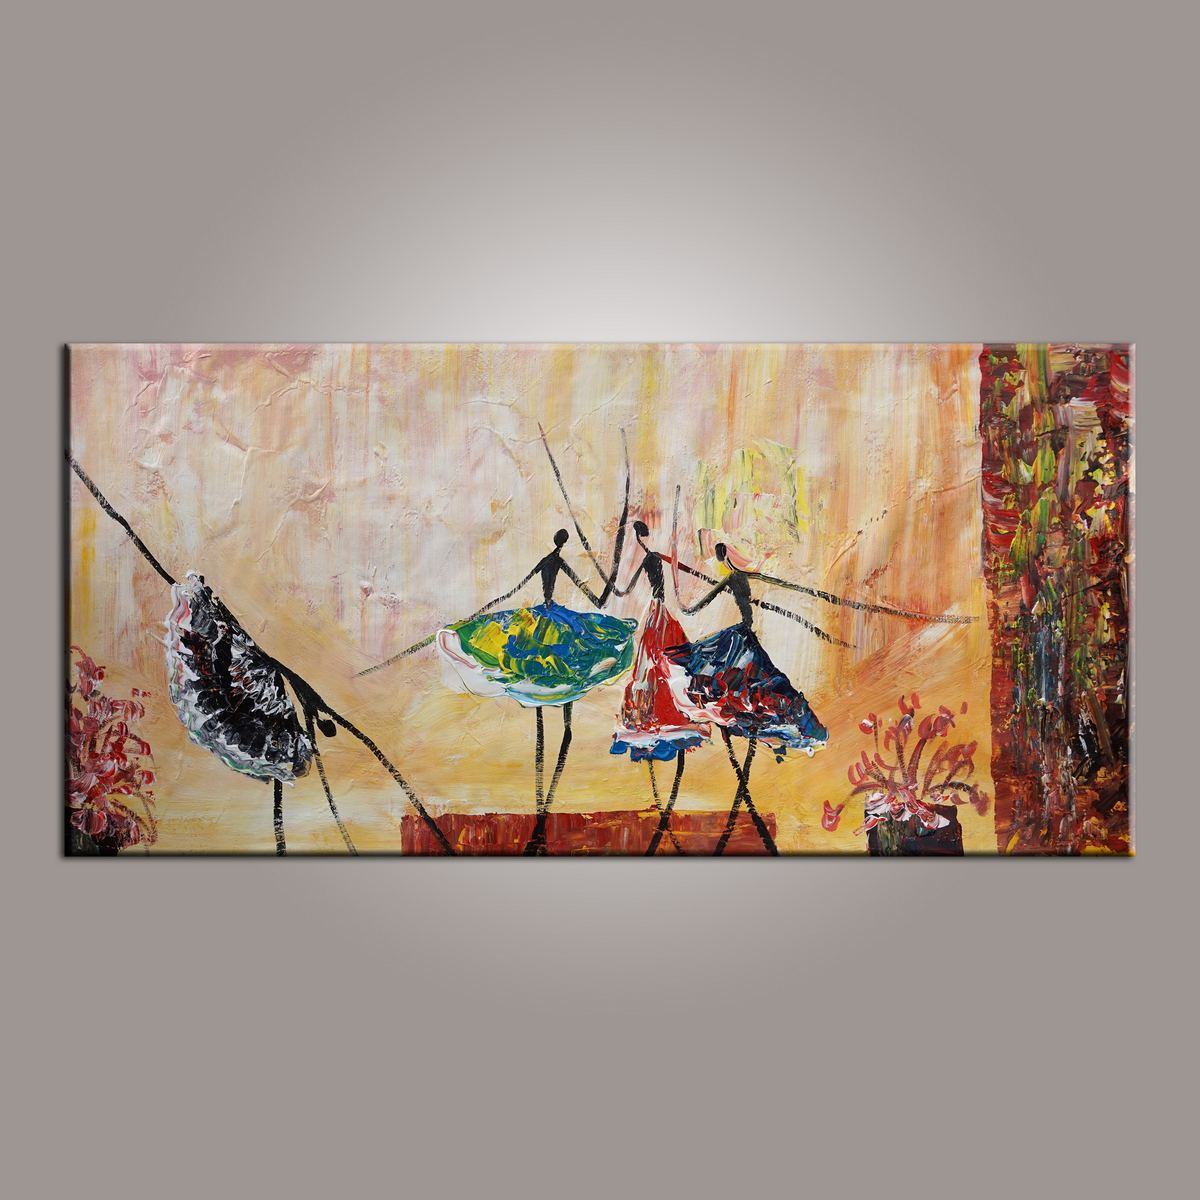 Canvas Painting, Large Art, Ballet Dancer Art, Abstract Painting, Abstract Art, Wall Art, Wall Hanging, Bedroom Wall Art, Modern Art, Painting for Sale-Paintingforhome